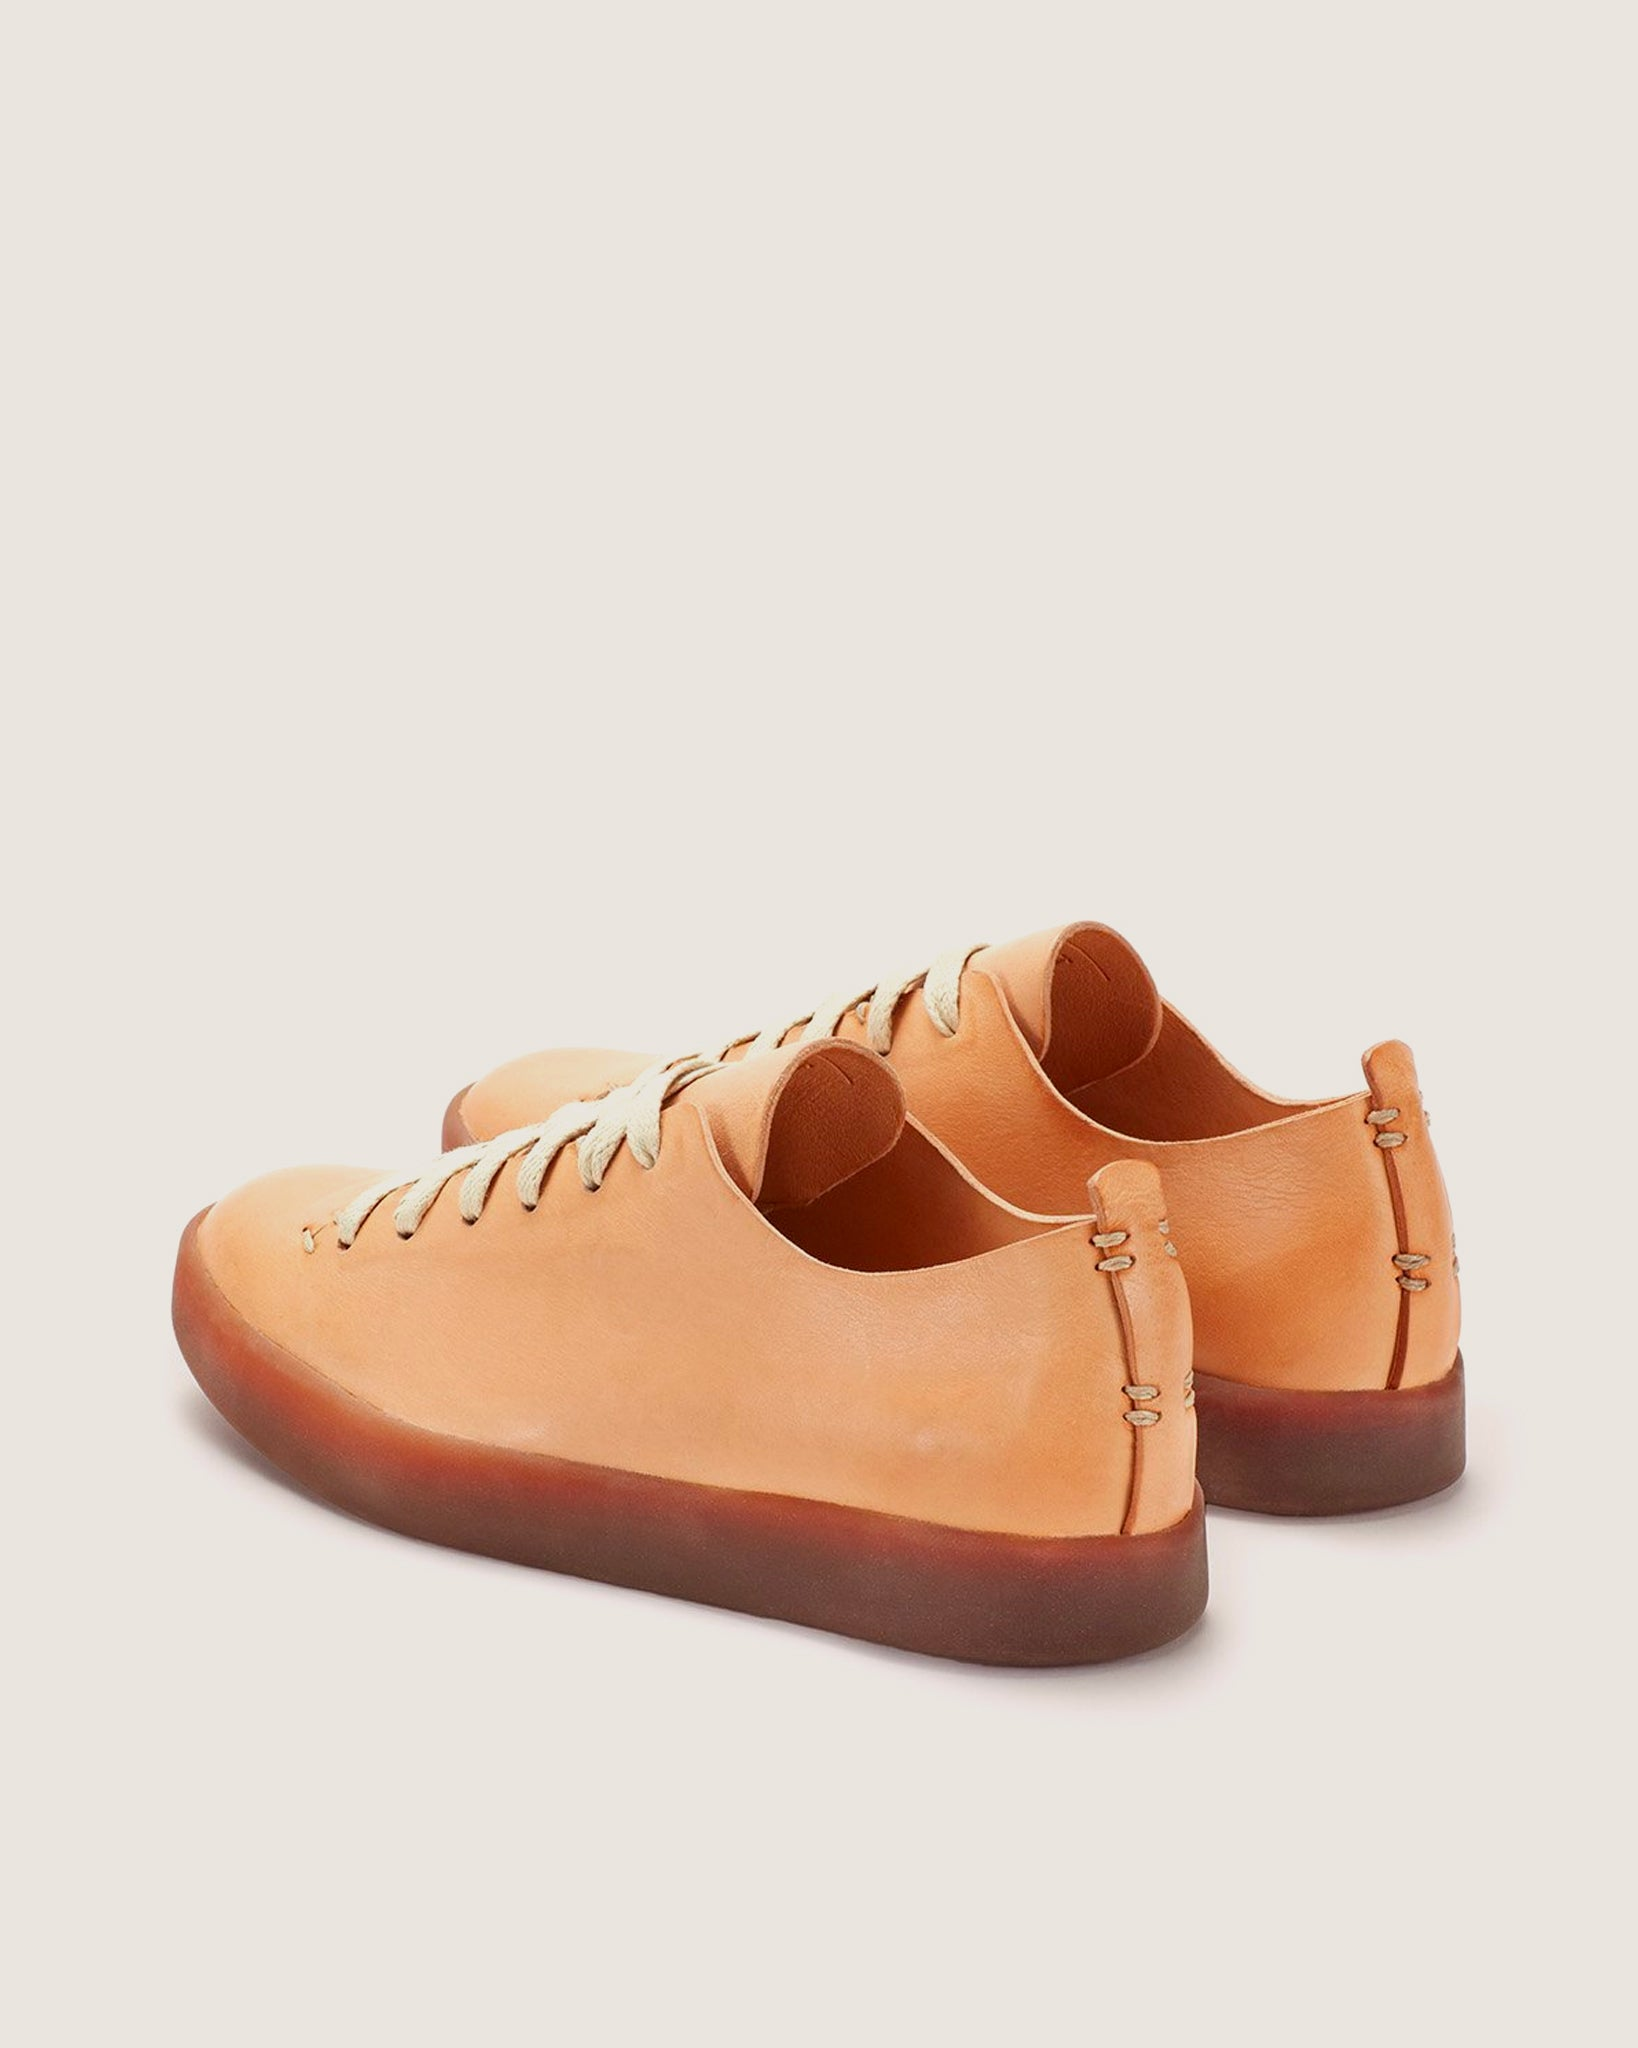 Feit Hand Sewn Low Latex Light Natural, Women's